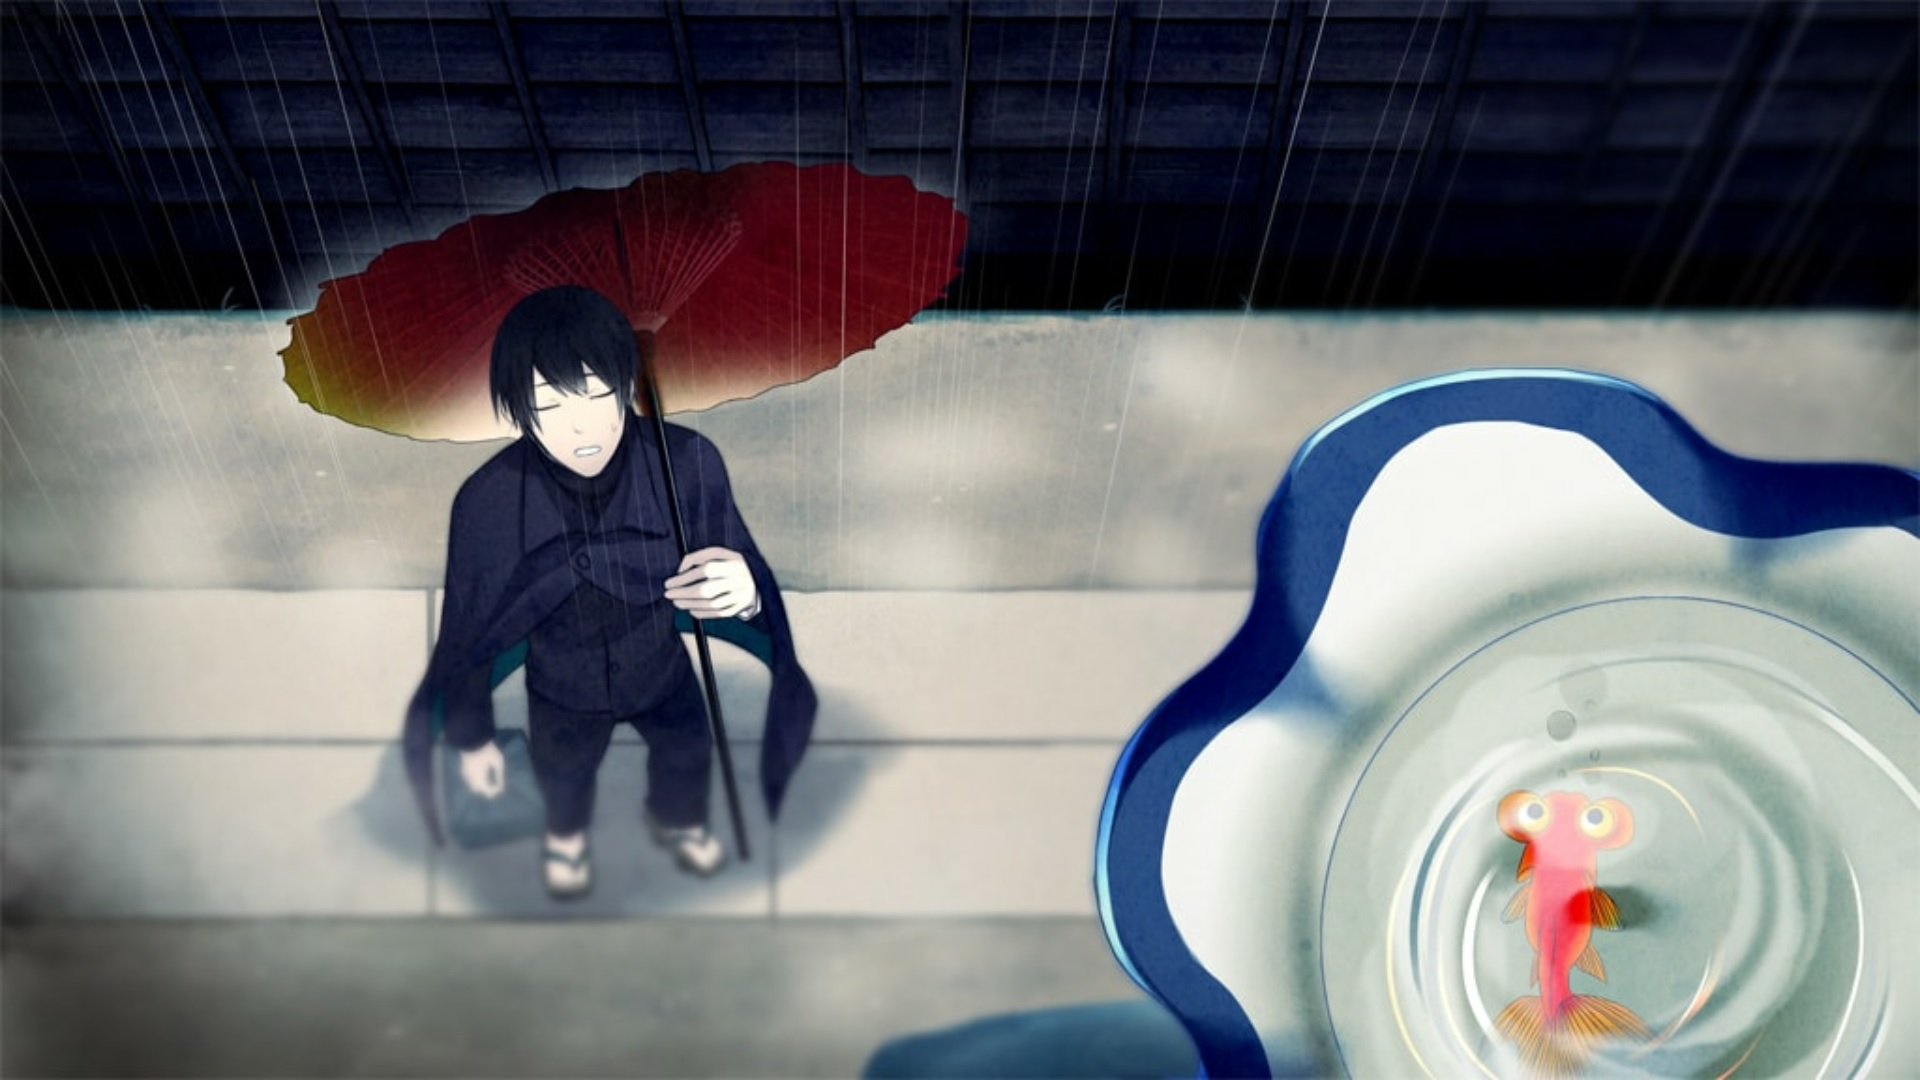 Minakami appears with an umbrella in the rain.